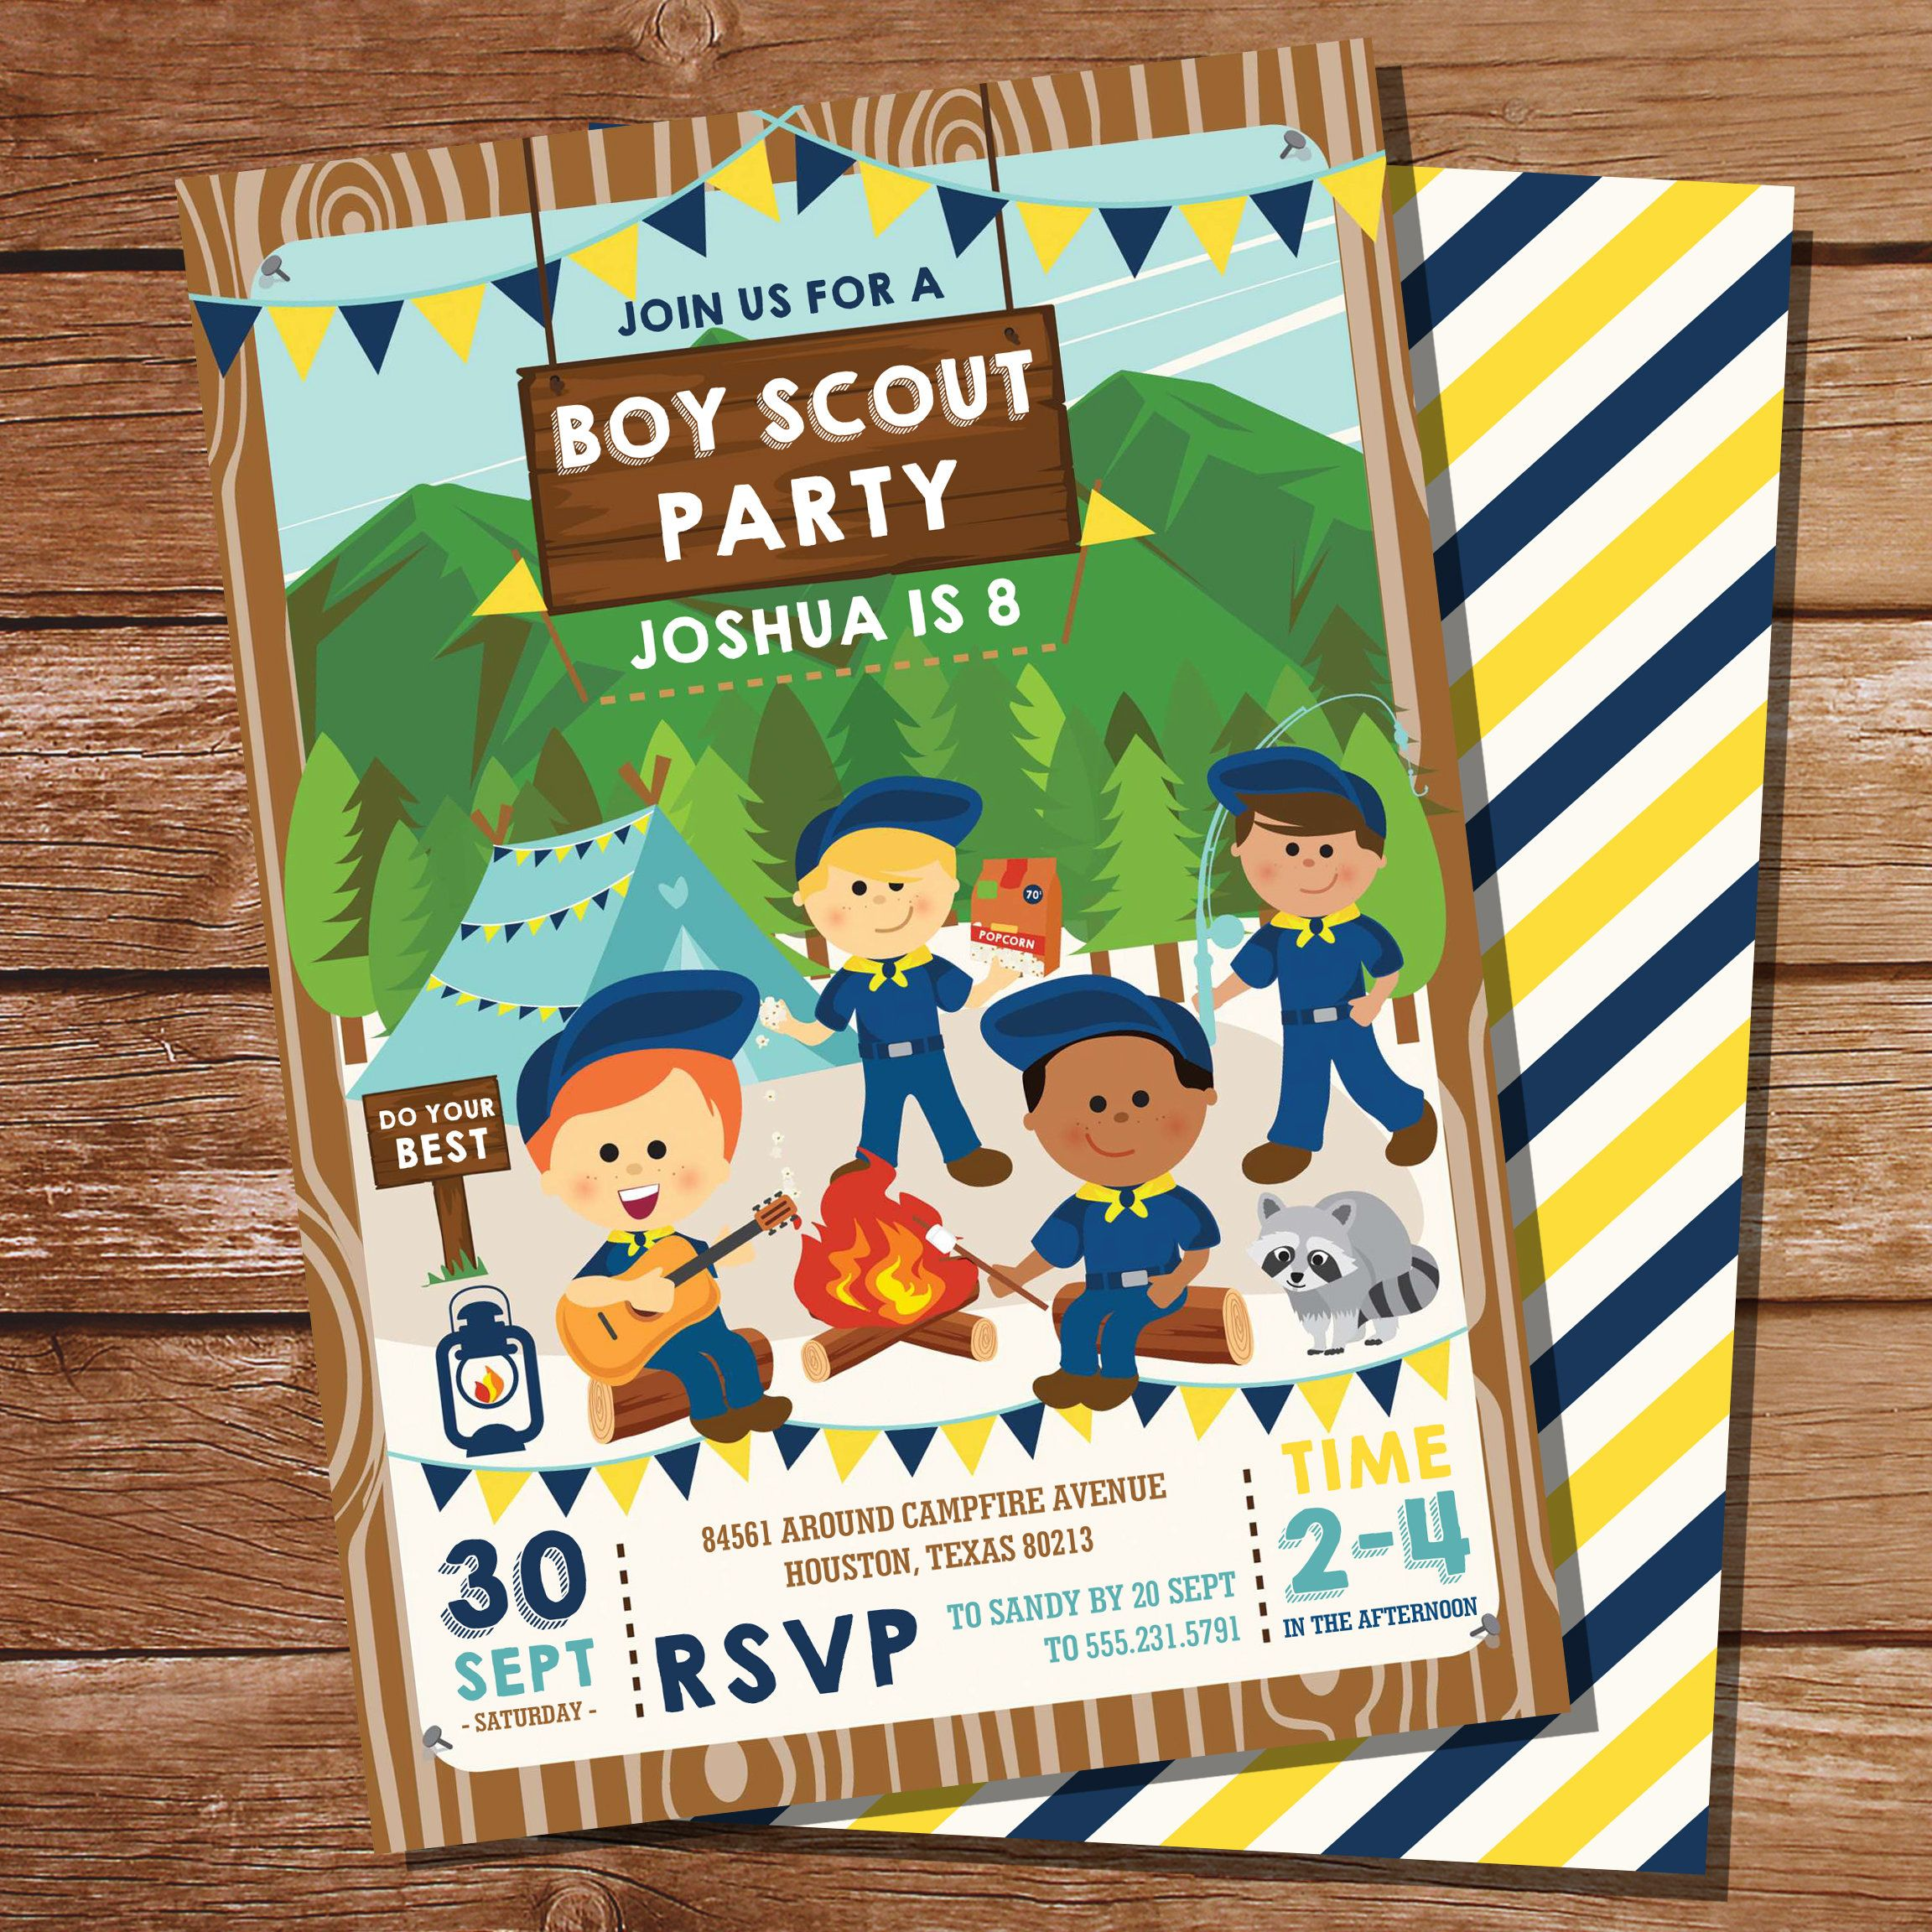 Boy Scout Party Invitation Boy Scout Birthday Party Etsy Camping Invitations Camping Parties Party Invitations